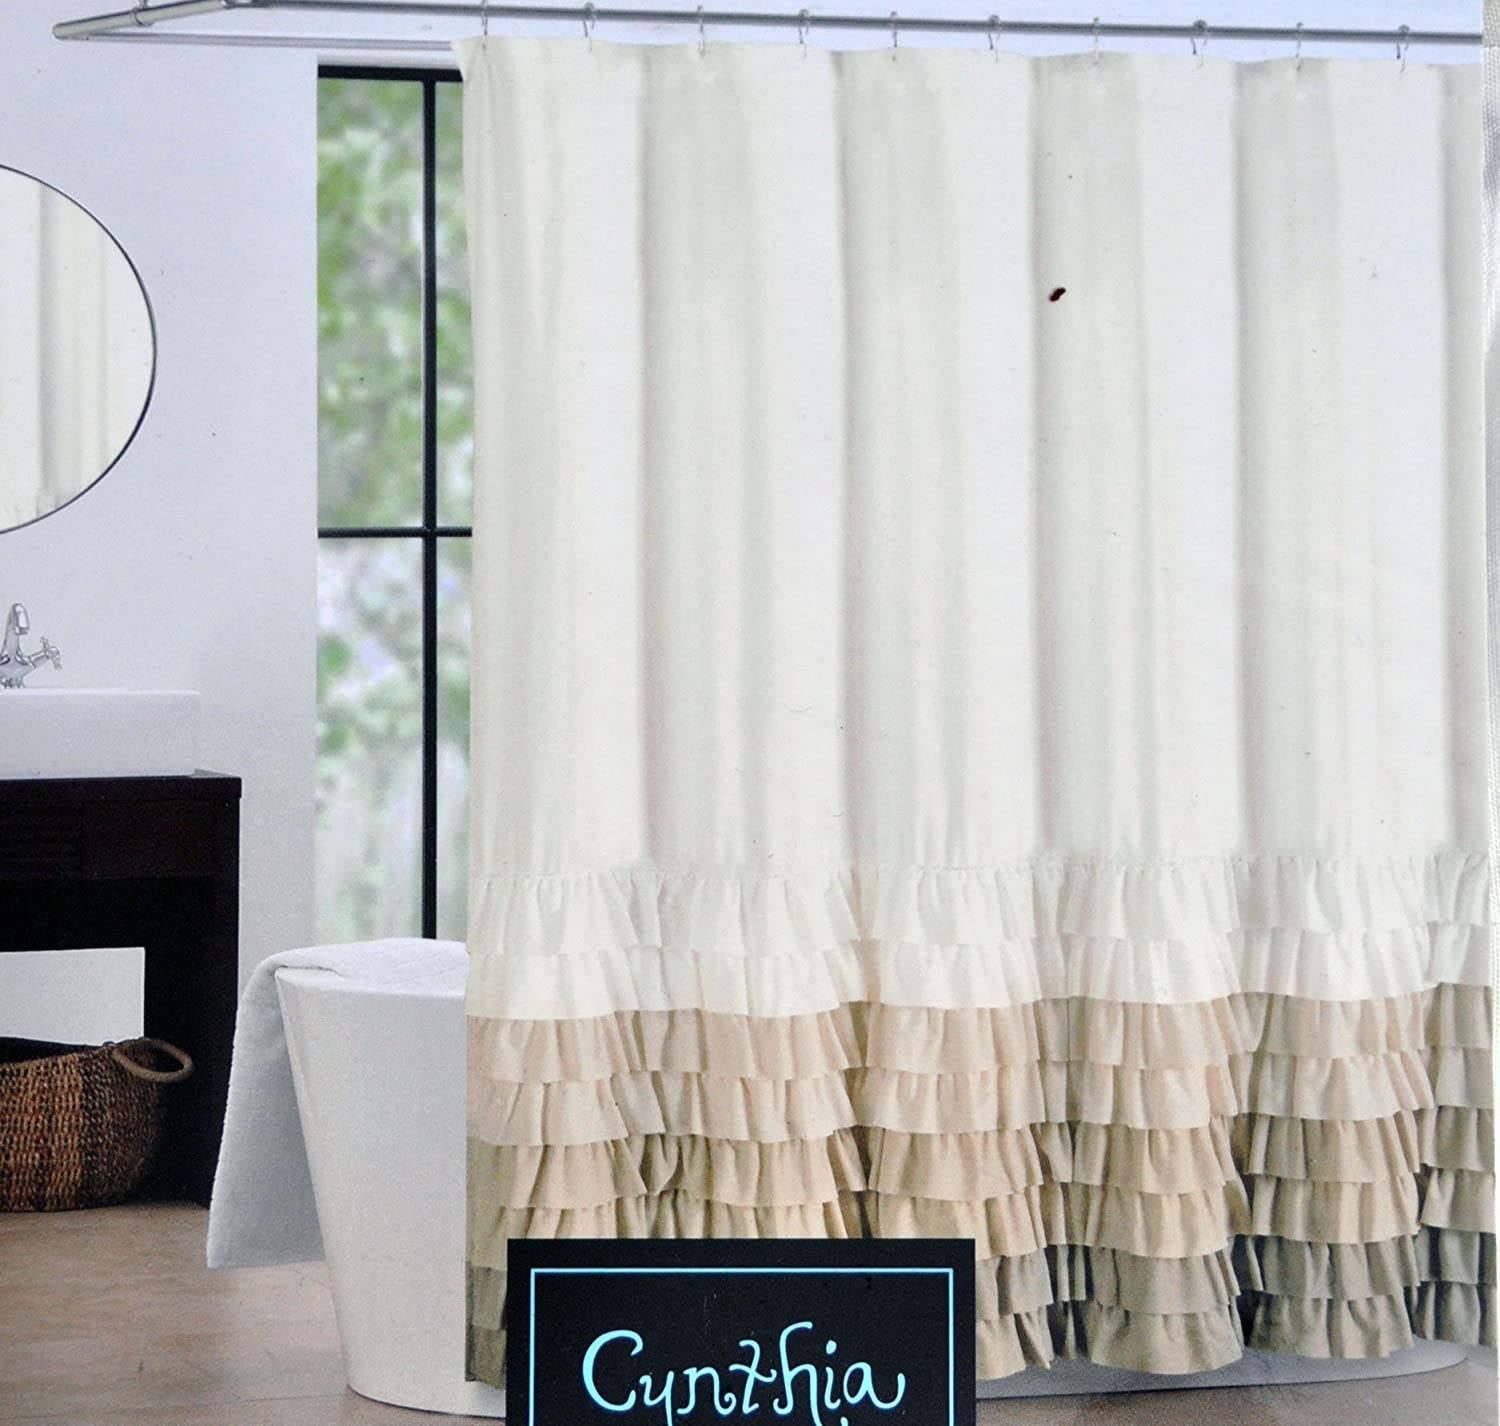 Tan Shower Curtains. Amazon.com: Cynthia Rowley Fabric Shower Curtain Tan,  Beige